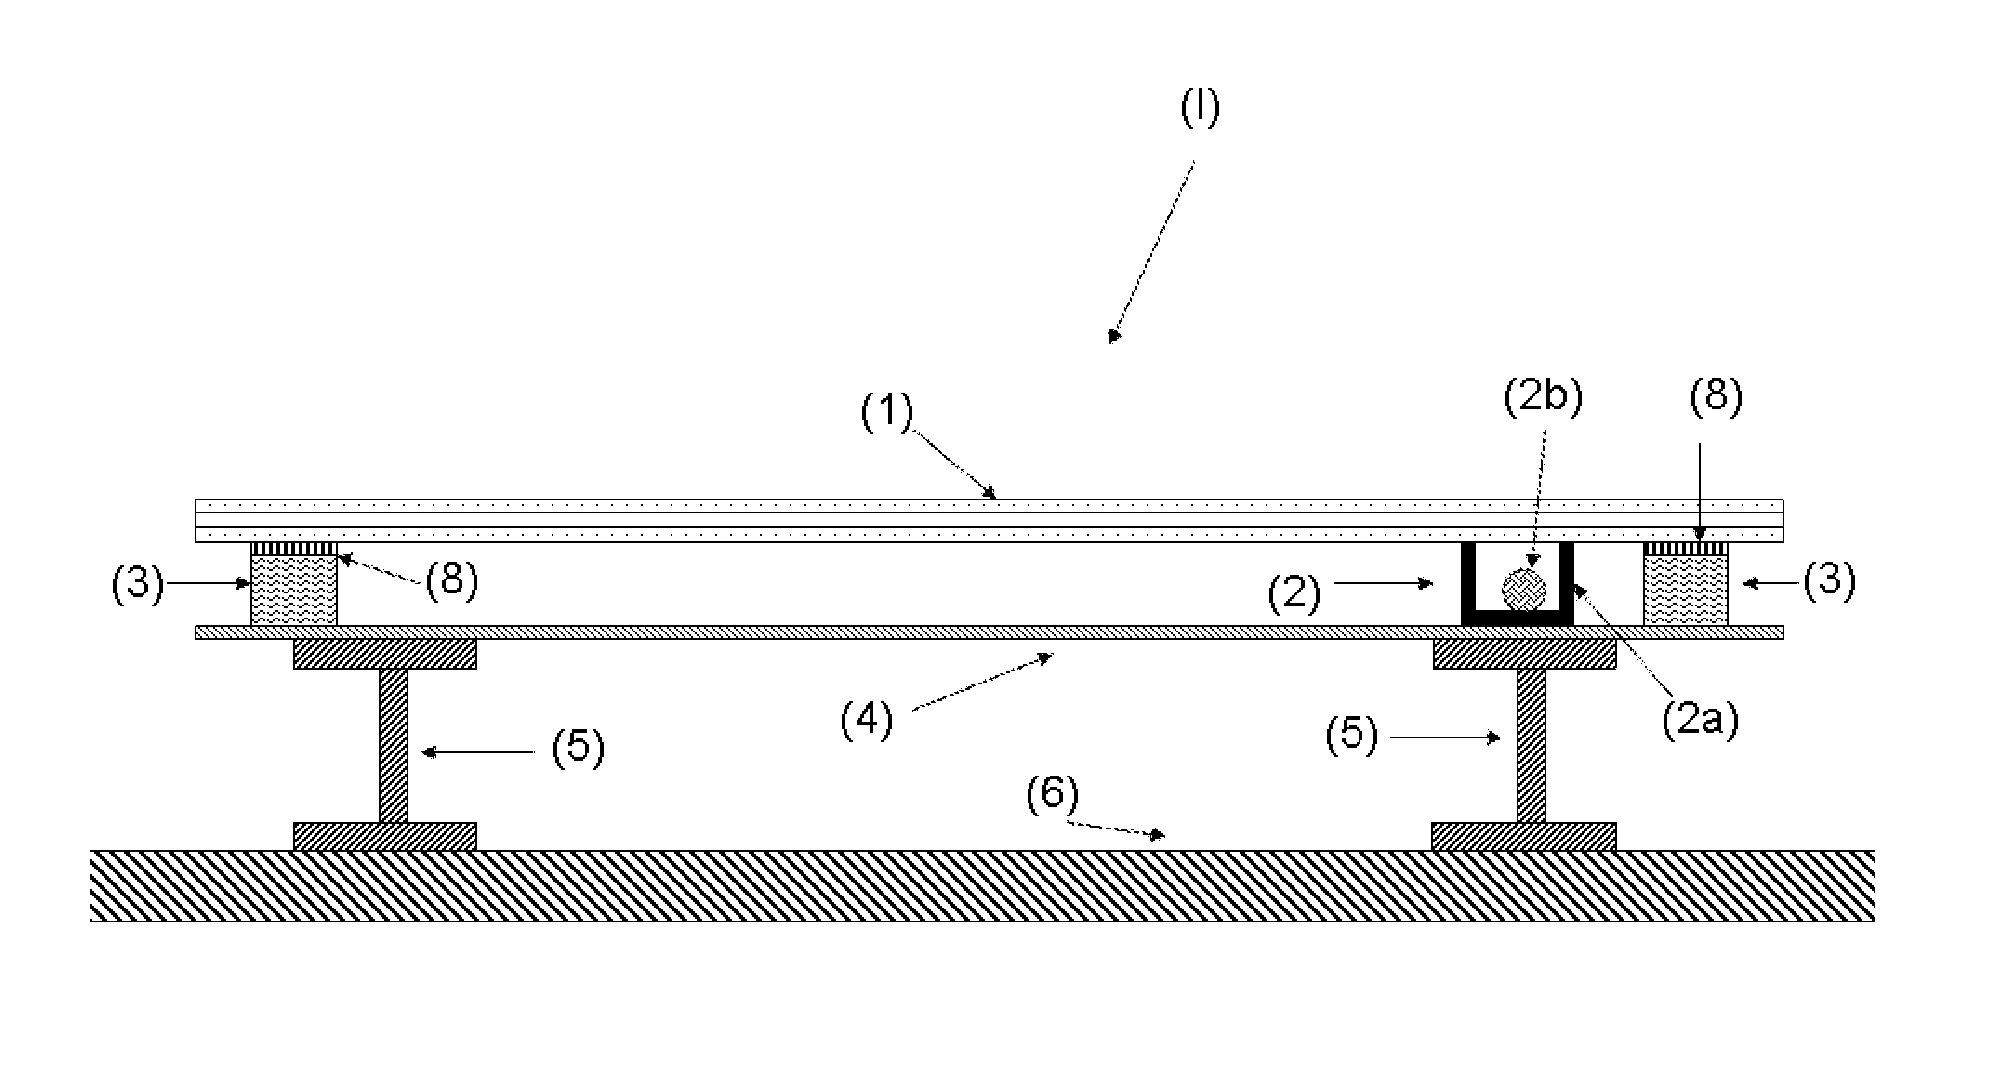 Patent Drawing Images - Frompo